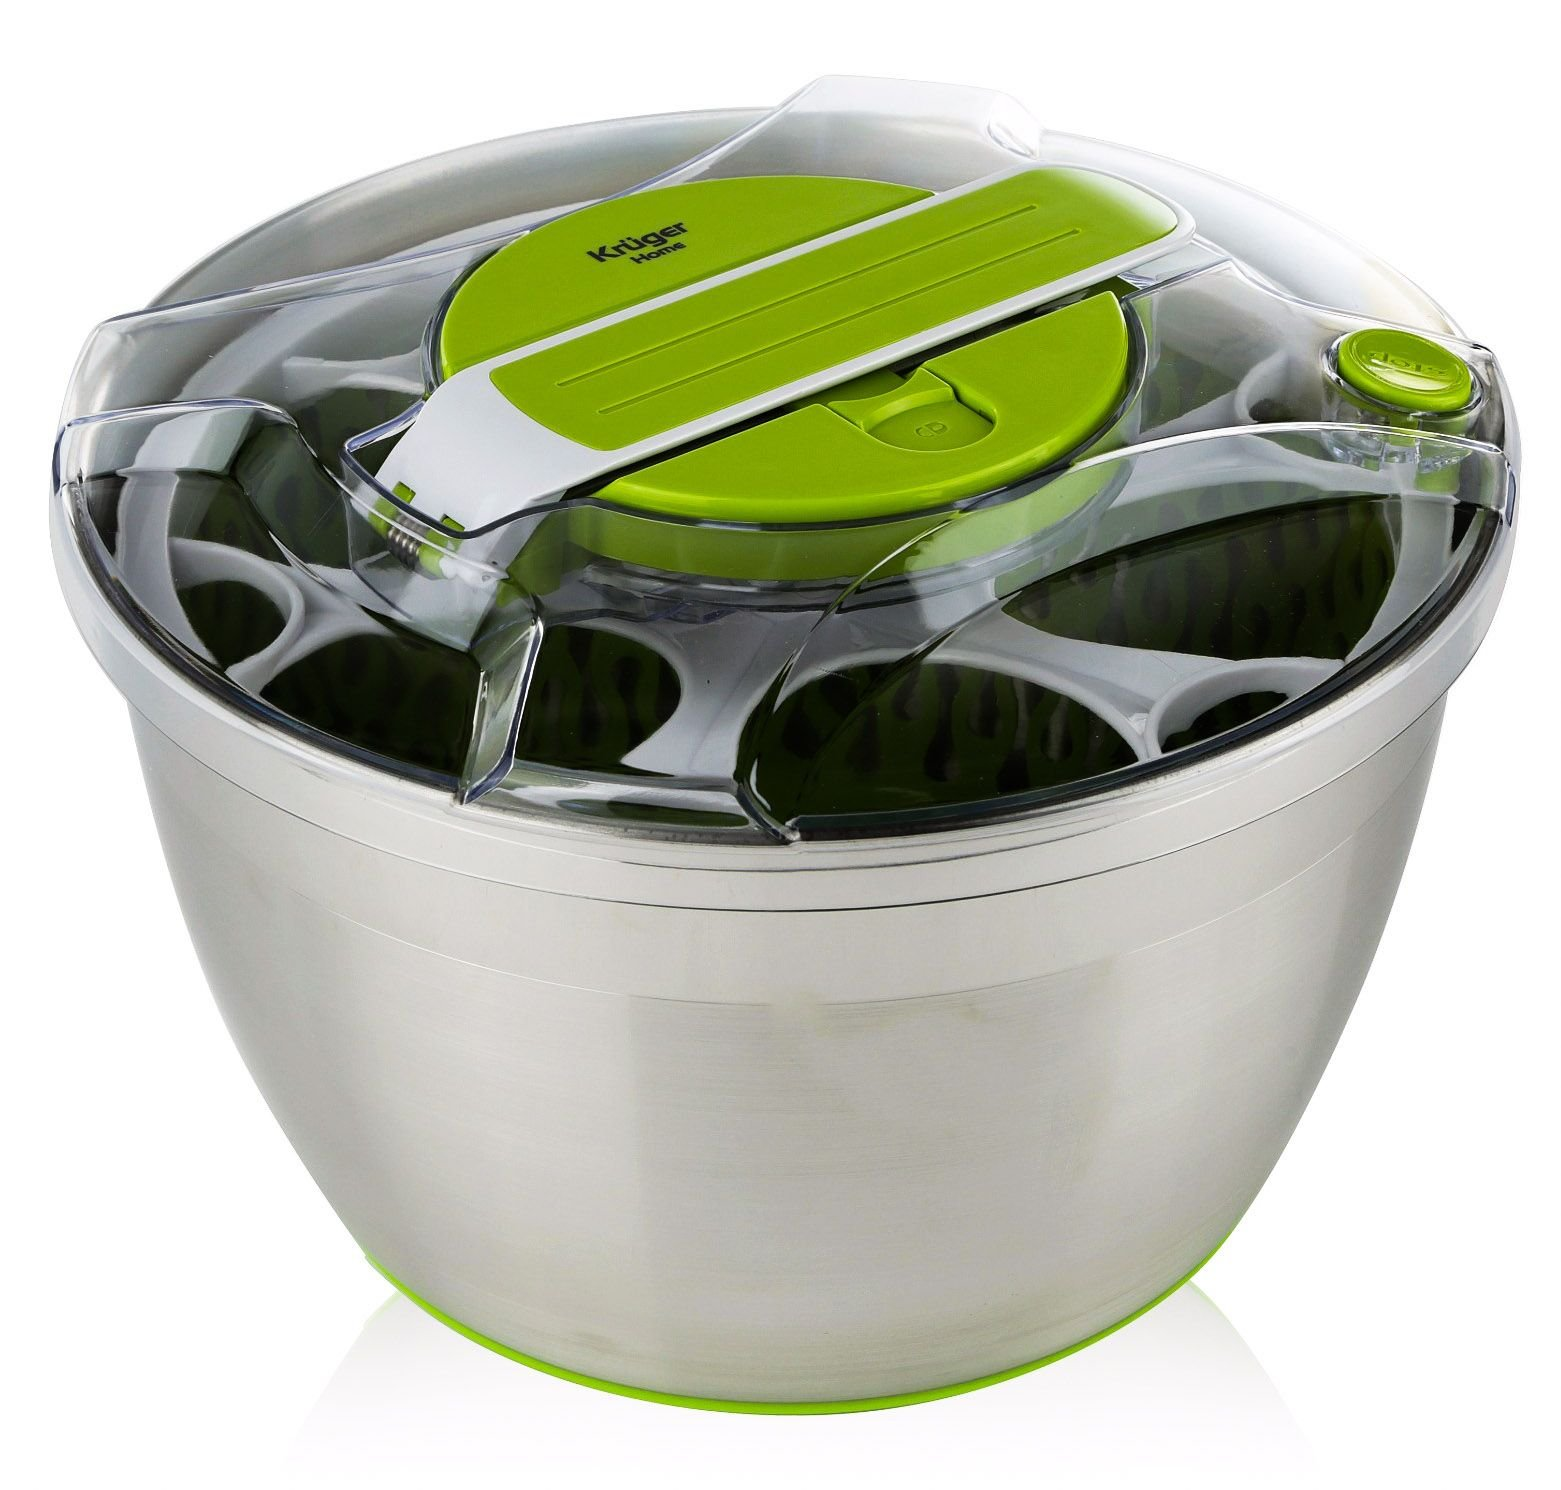 Large Stainless Steel Salad Spinner - with Lid and Plastic Colander, Push Down Lever, Non Slip Base, Dishwasher Safe, by Kruger Home